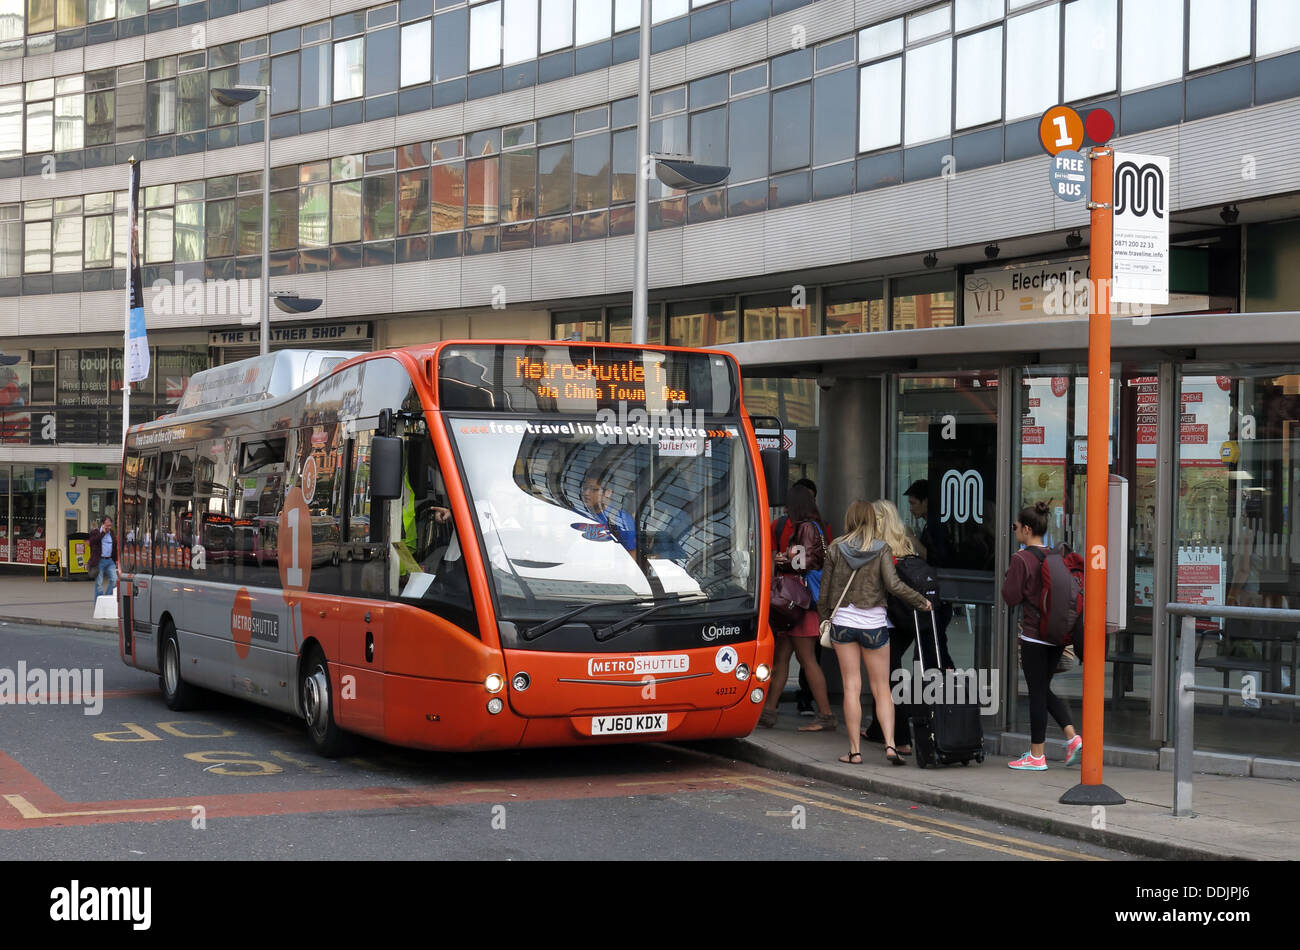 Metrolink free bus in Manchester outside Piccadilly Station Stock Photo